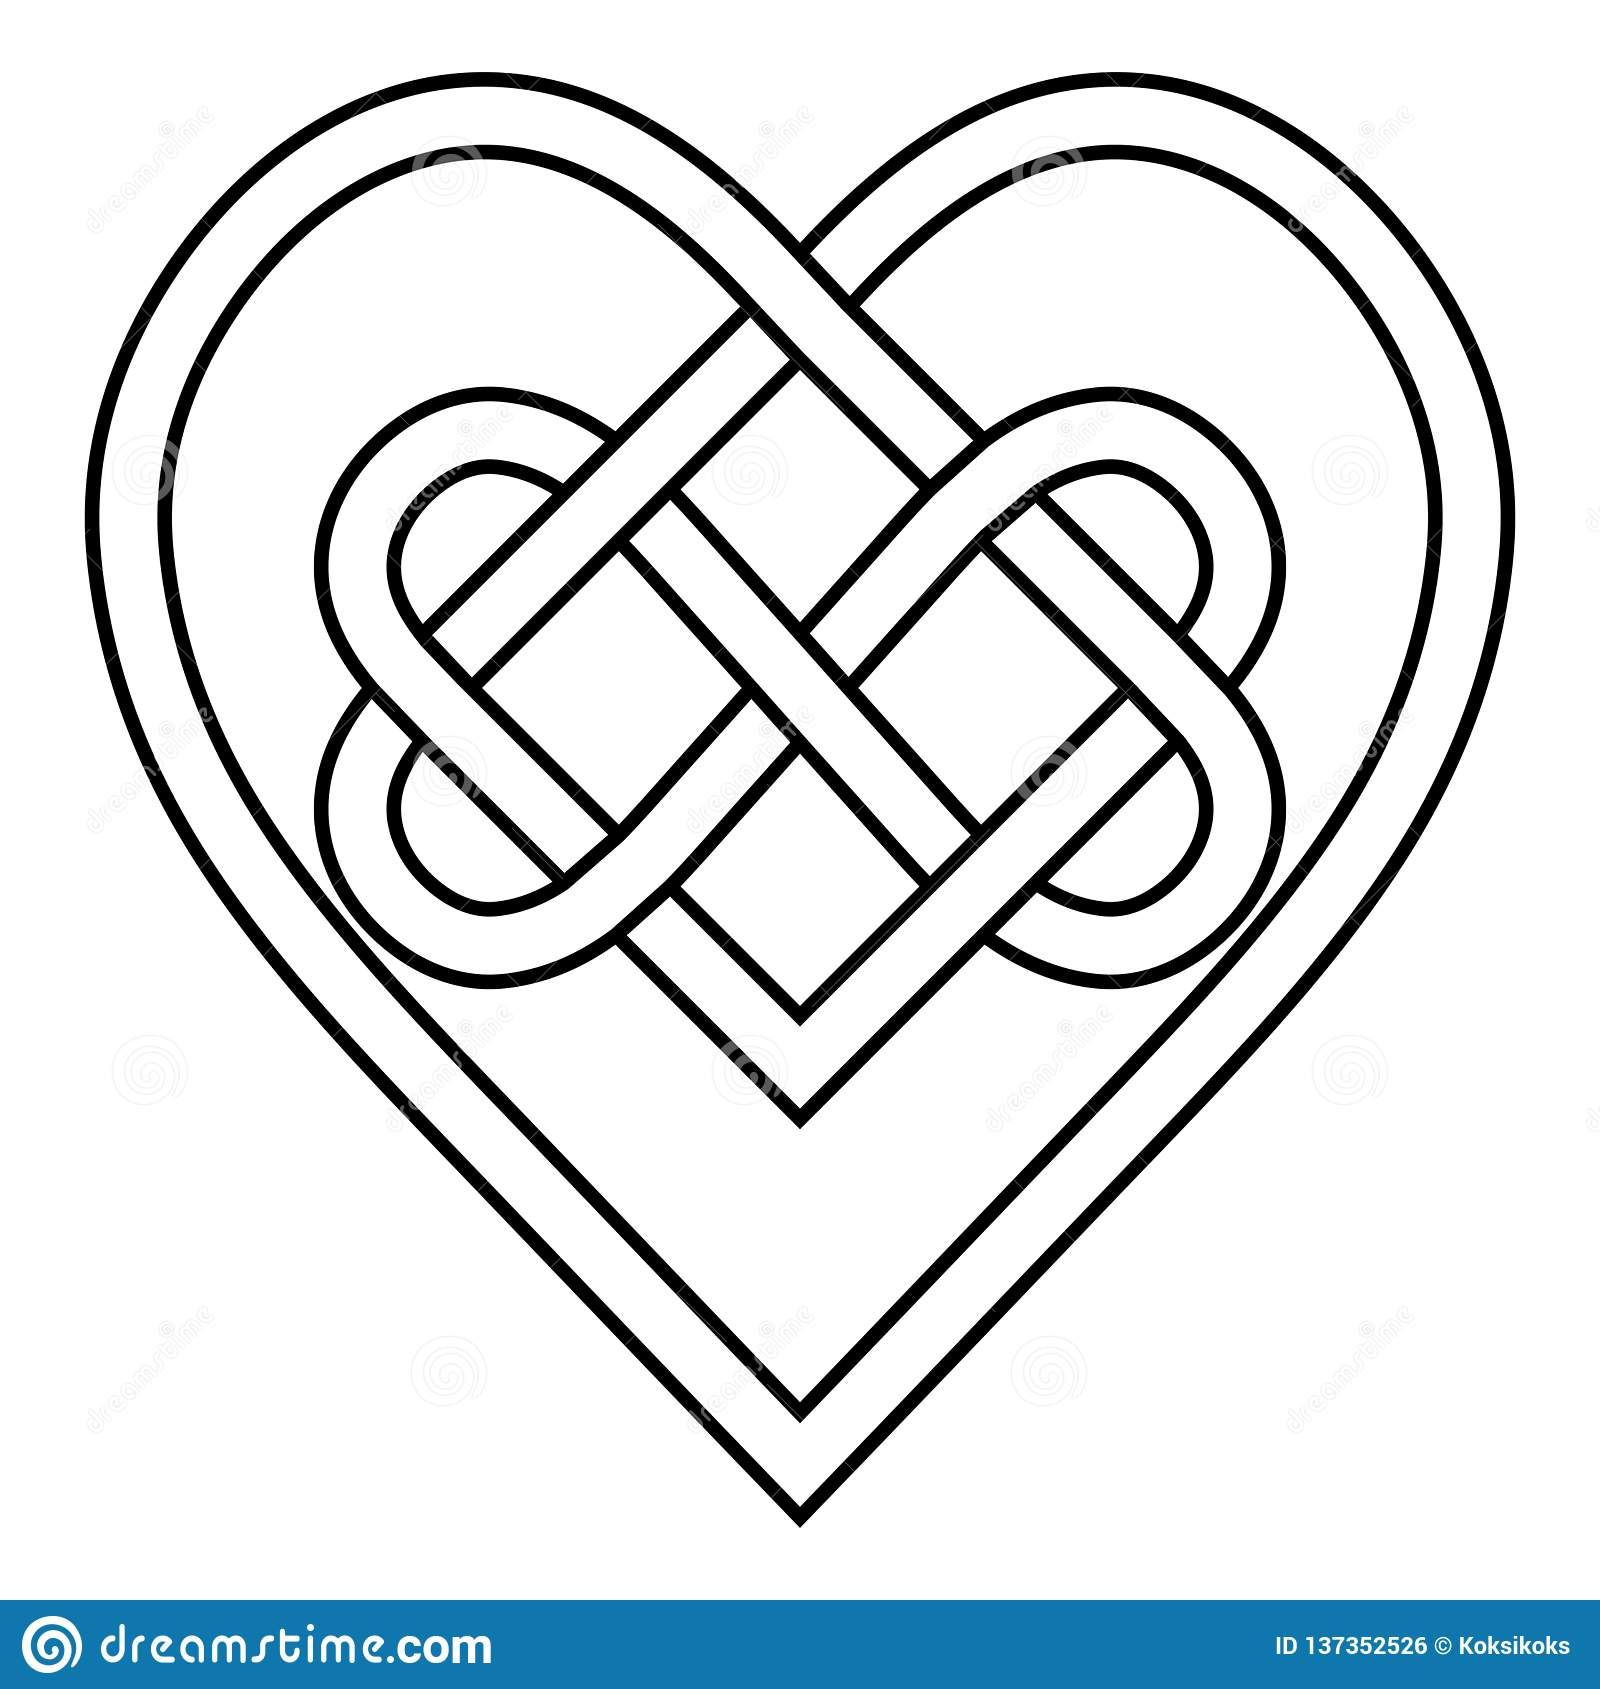 Download Illustration about Celtic knot rune bound hearts infinity ...